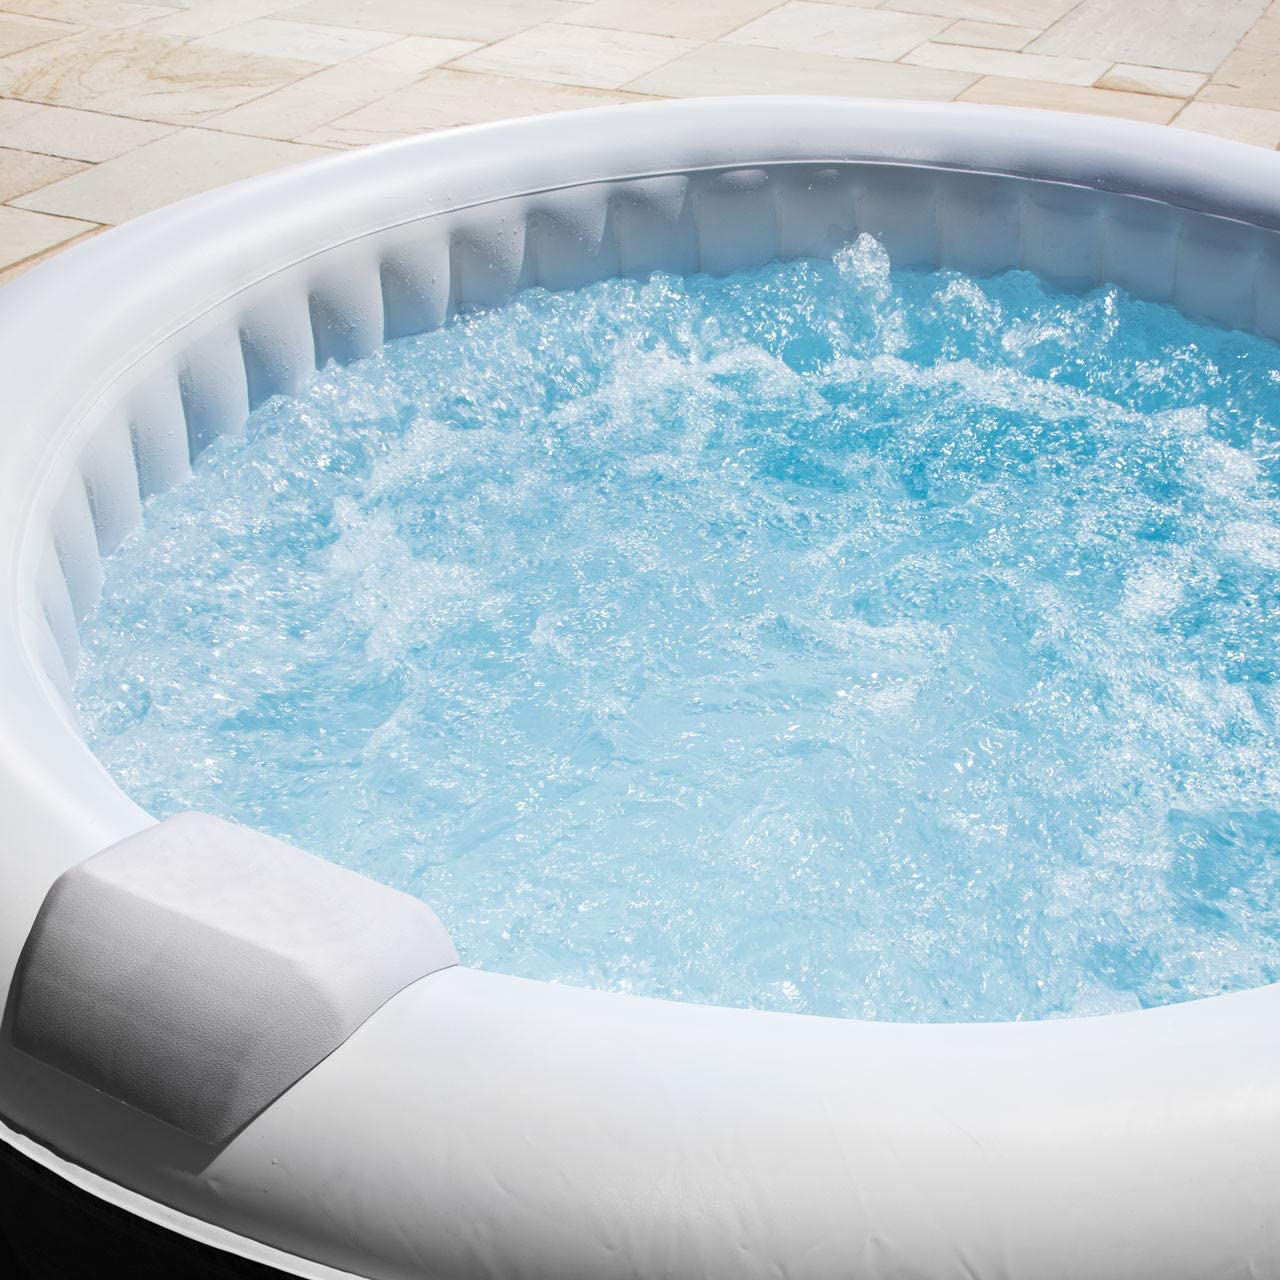 Best Inflatable Hot Tub To Buy